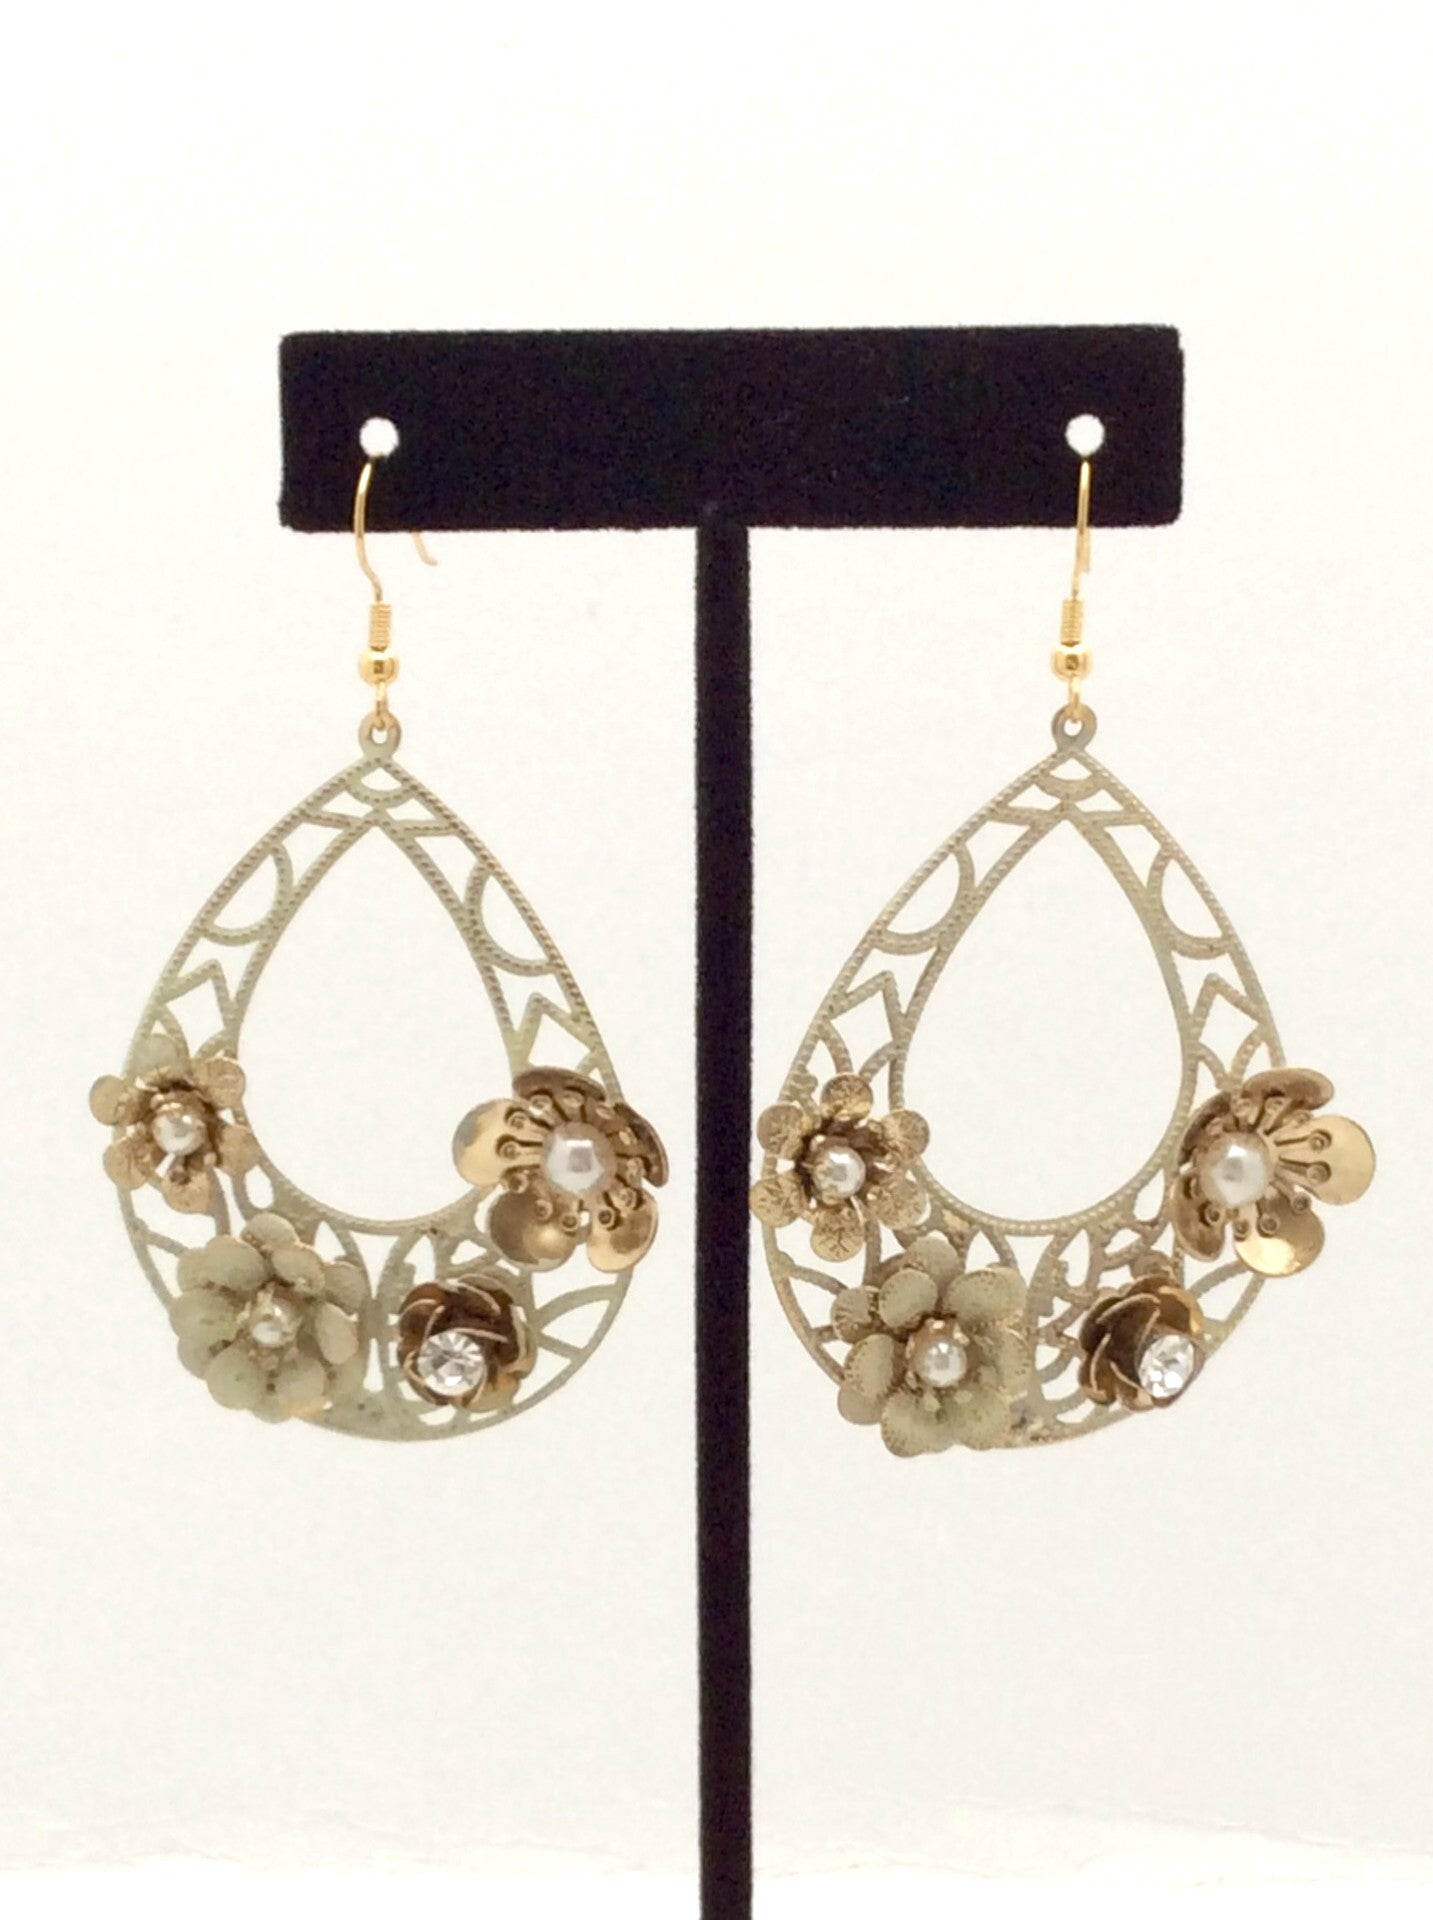 Vintage Flower Earrings - Spoiled Me Rotten Boutique